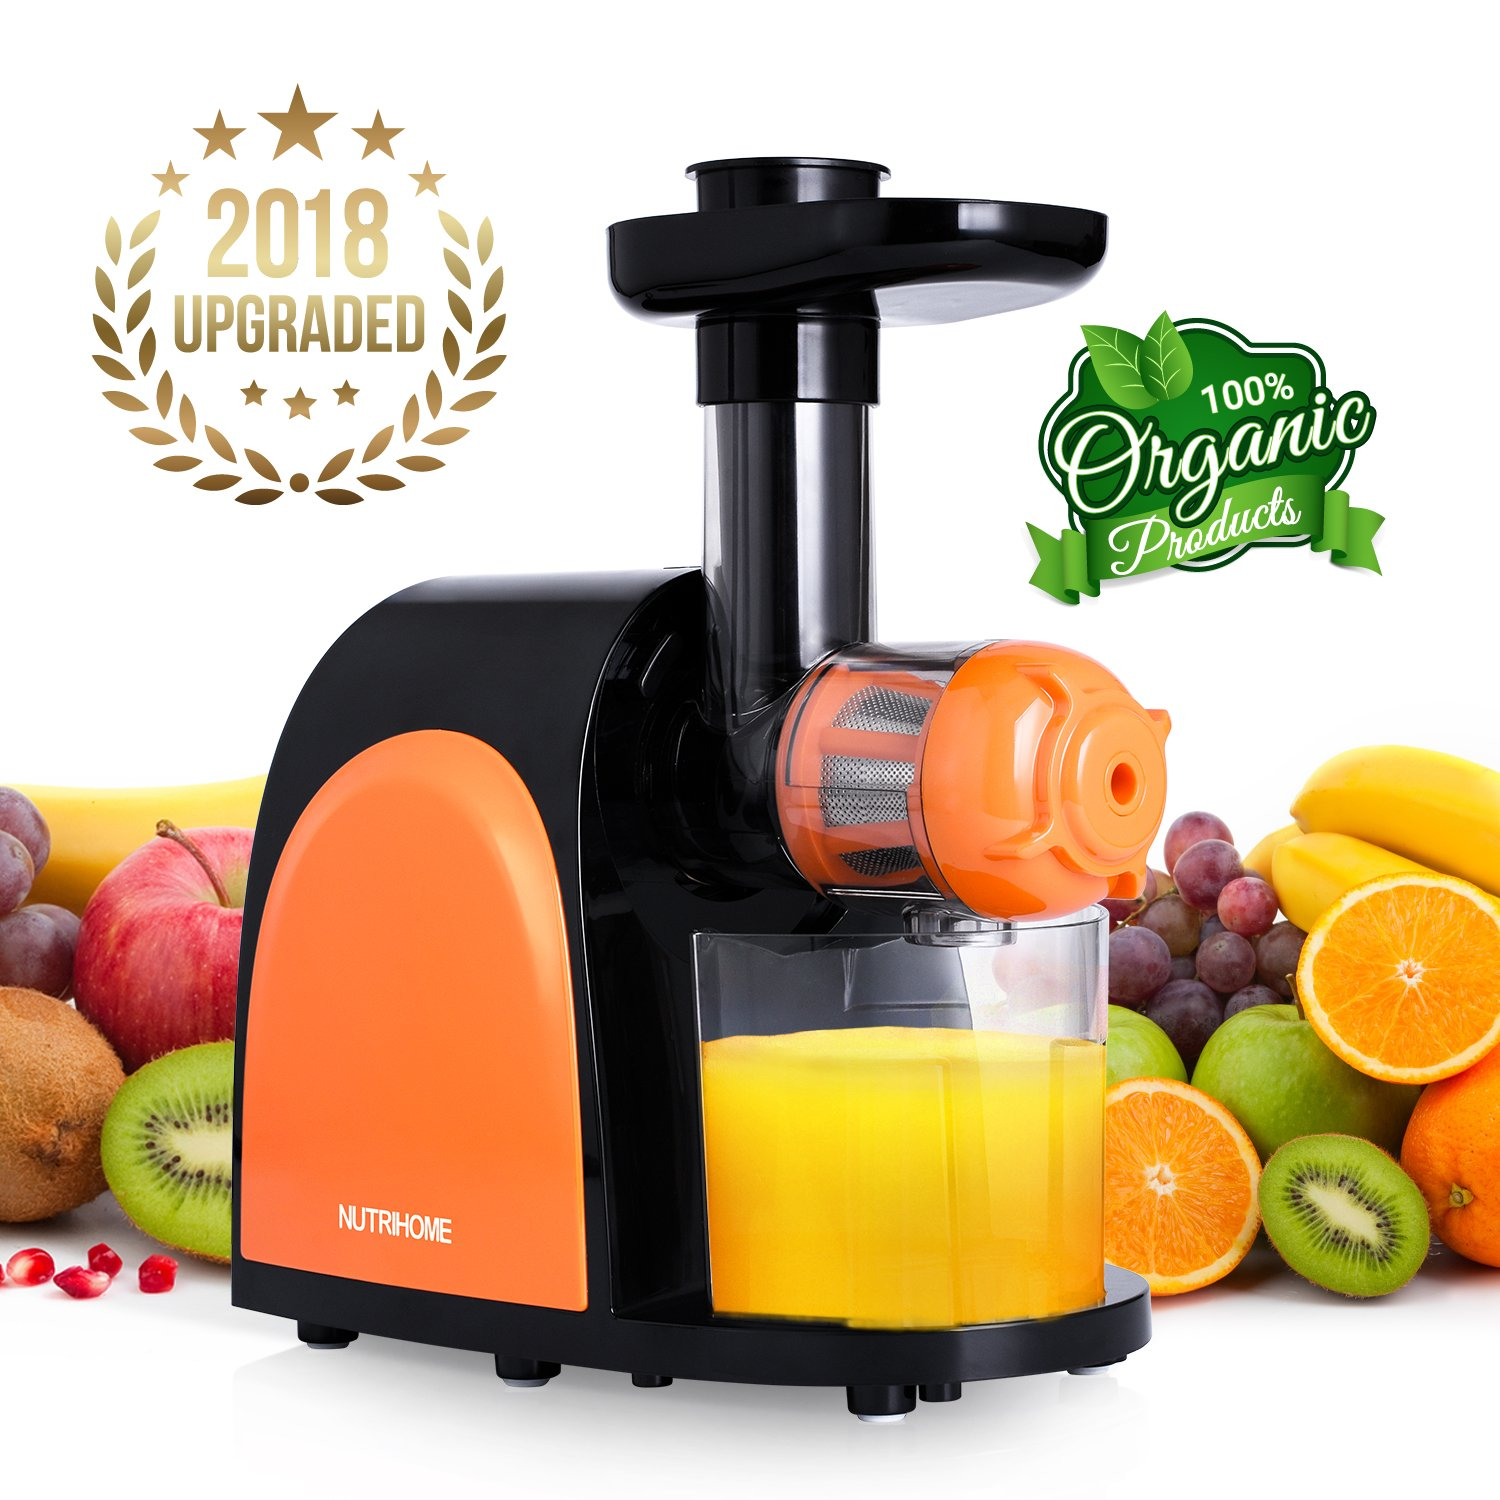 Juicer Slow Masticating Juicer Extractor,Cold Press Juicer Machine, Slow Juicer Extractor with Quiet Motor & Reverse Function,Easy to Clean,Higher Nutrient Fruit and Vegetable juice Chefmos